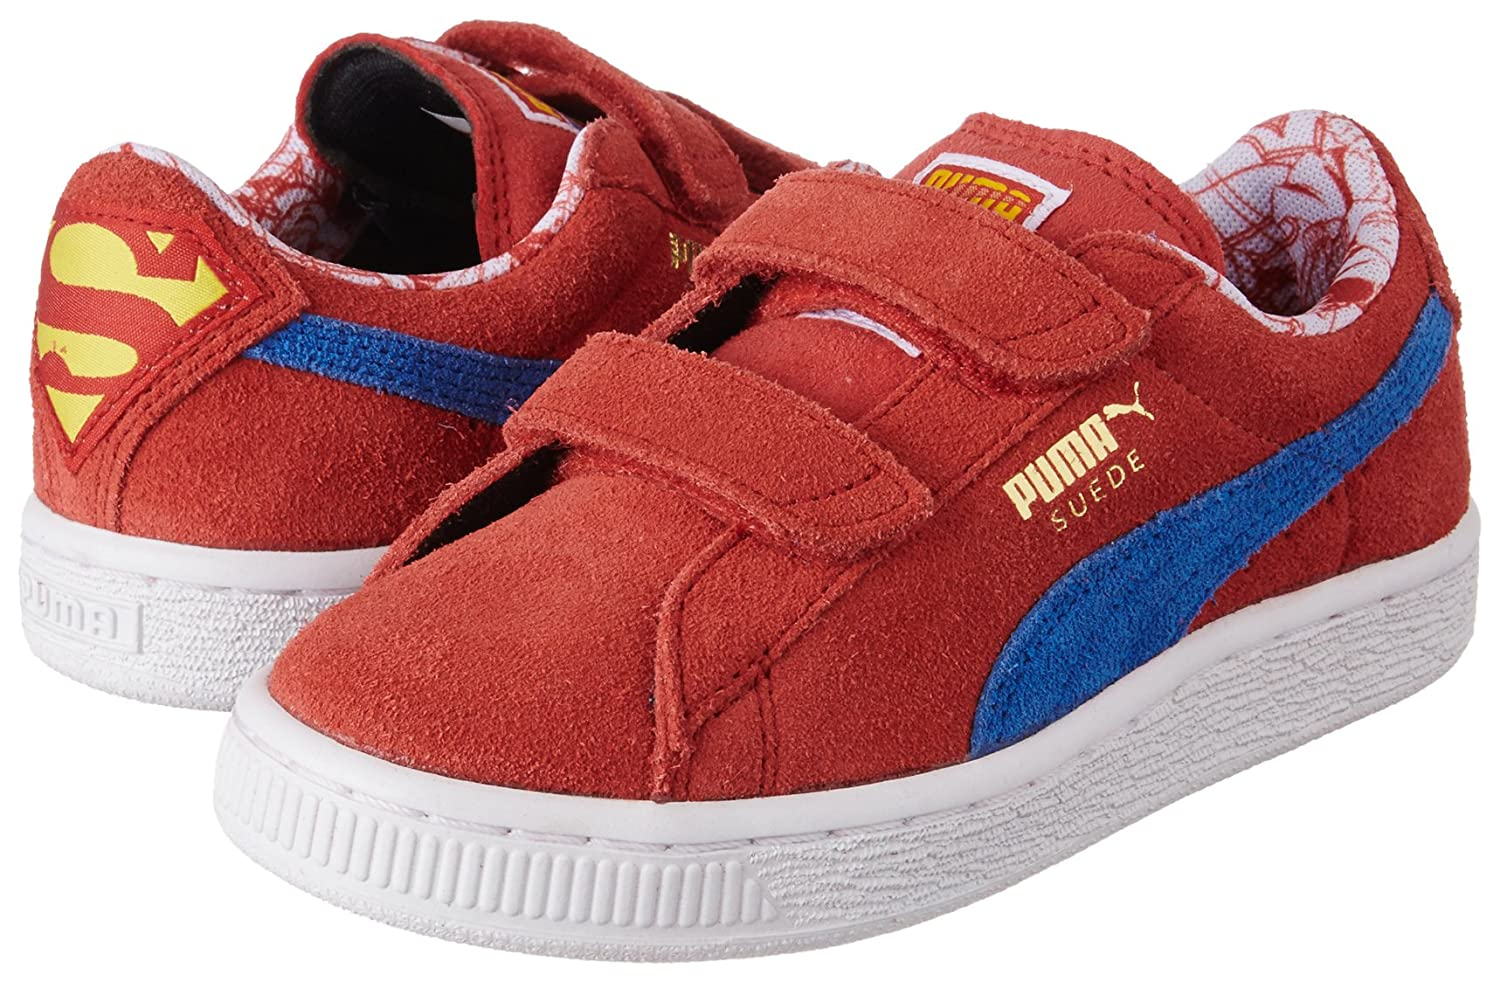 Puma SUPERMAN SUEDE V INF Wildleder Kinder Sneakers Schuhe Neu: Amazon.de:  Sport & Freizeit